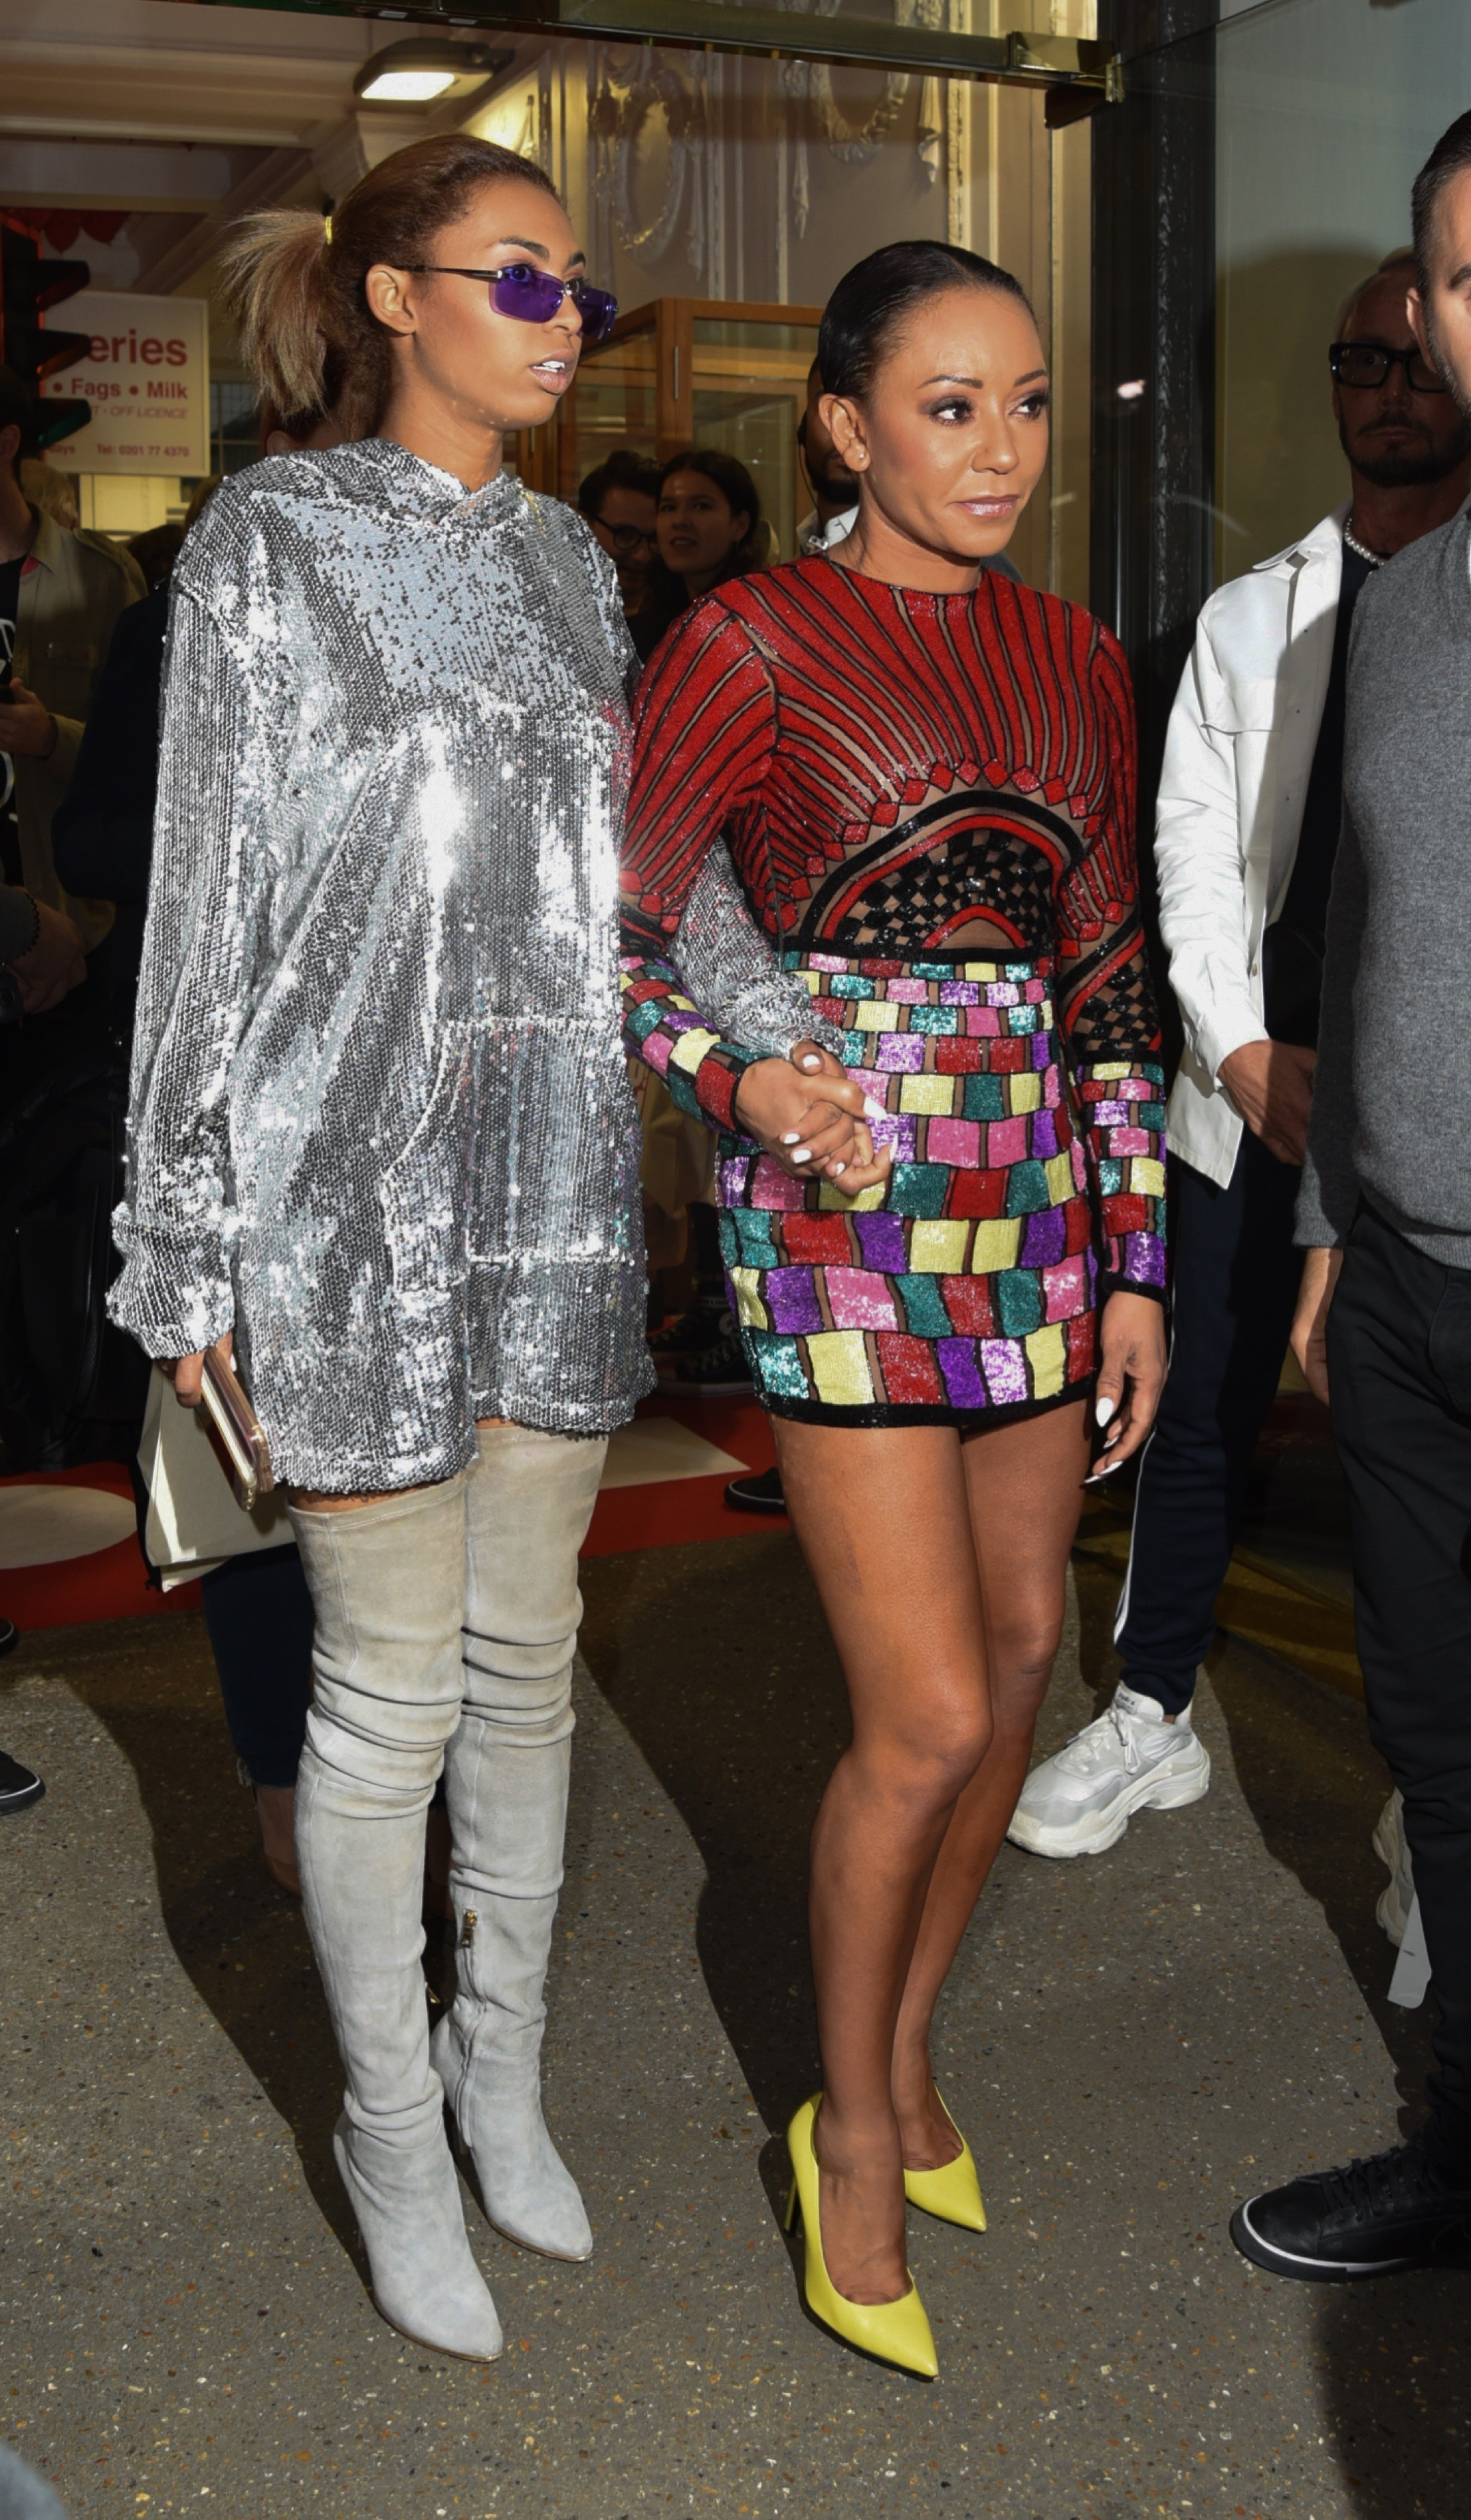 Stars Arrive At The Hello Magazine 30th Birthday Celebration In London <P> Pictured: Phoenix Gulzar, Mel B <B>Ref: SPL1694861  100518  </B><BR/> Picture by: Flynet - Splash News<BR/> </P><P> <B>Splash News and Pictures</B><BR/> Los Angeles:	310-821-2666<BR/> New York:	212-619-2666<BR/> London:	870-934-2666<BR/> <span id=